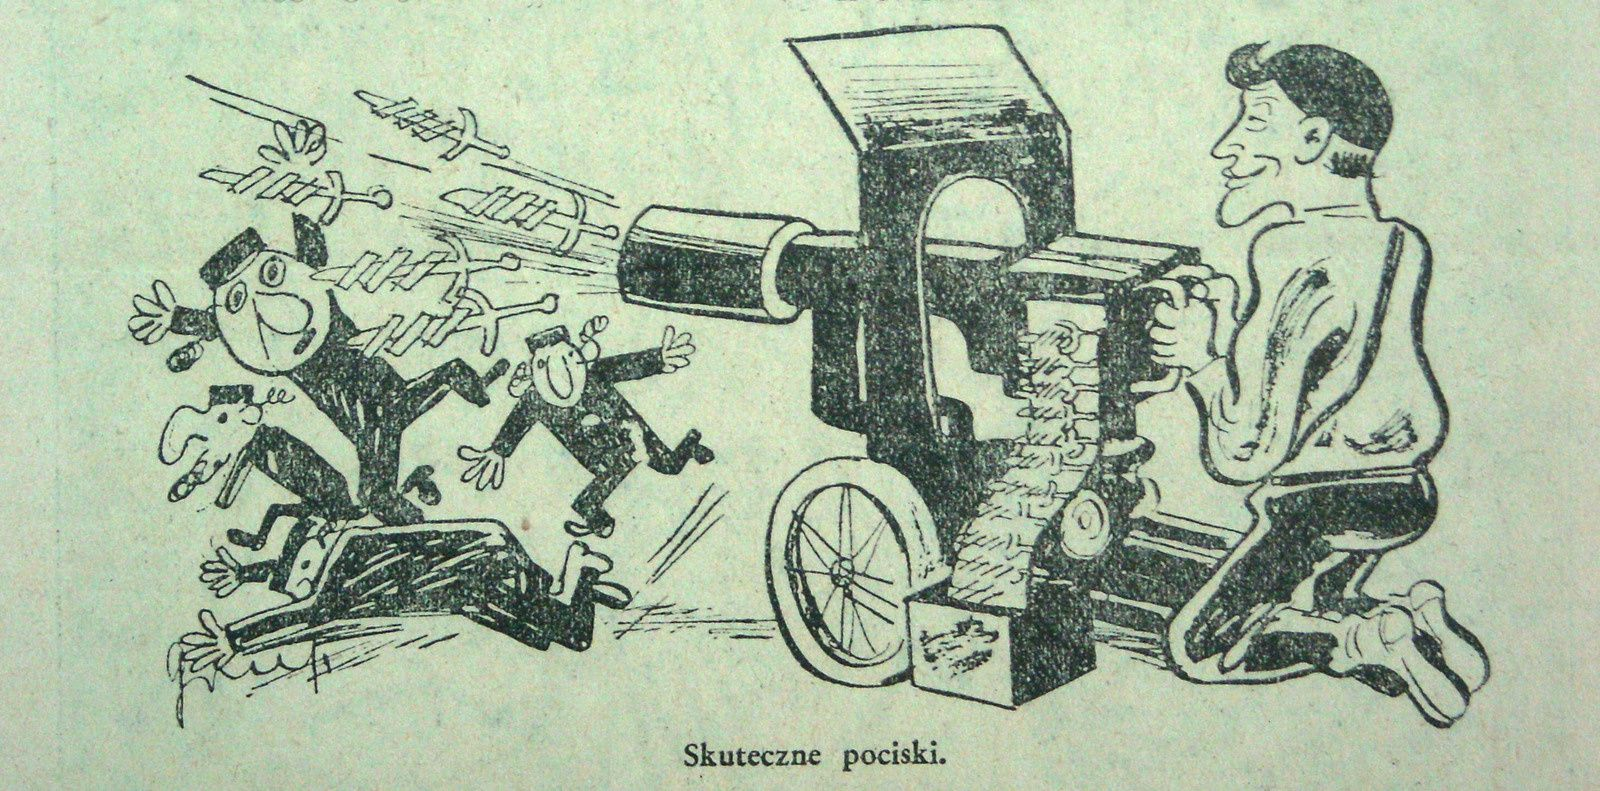 Kazimierz Grus,  Effective missiles (1935). This cartoon shows young Polish nationalist shooting the Jews with co-called Chrobry's swords - the sign of Polish nationalists in 1930.